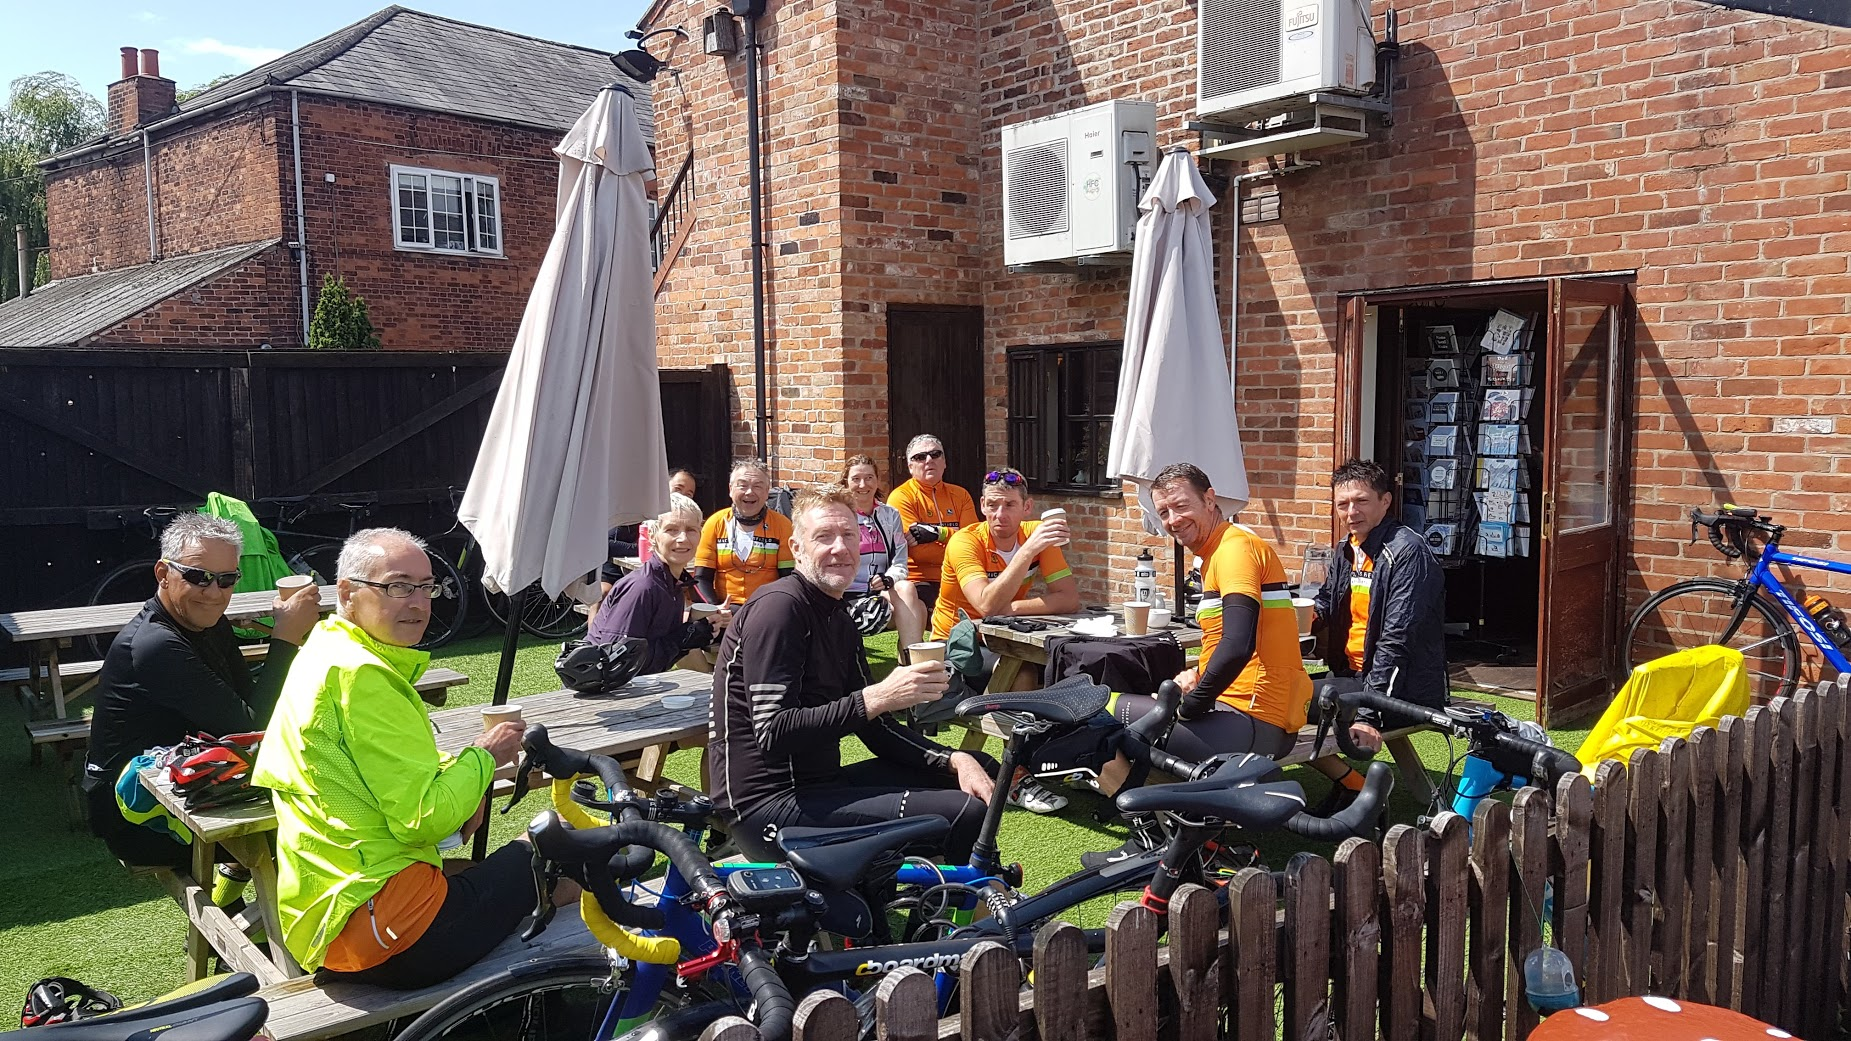 Craig, Steve, Bennet, Janet, Mark H, Carl, Jill, Andrew, Christian, Mark B, Russell. Early bath: Mike C. Welcome to Jill and Mark H on their first Lark Rides.